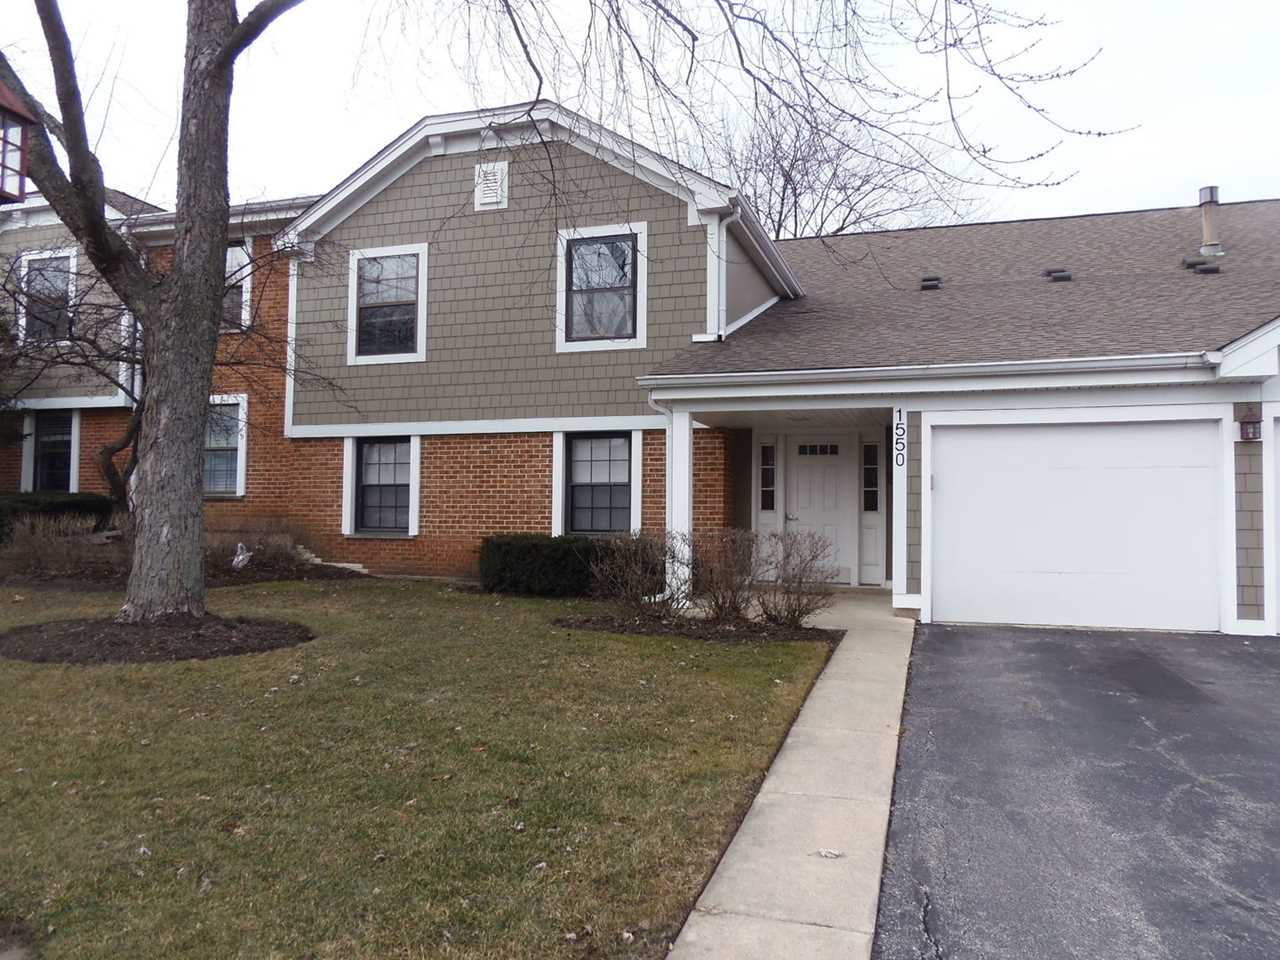 1550 7 Pines Rd #D2 Schaumburg, IL 60193 | MLS 10170318 Photo 1